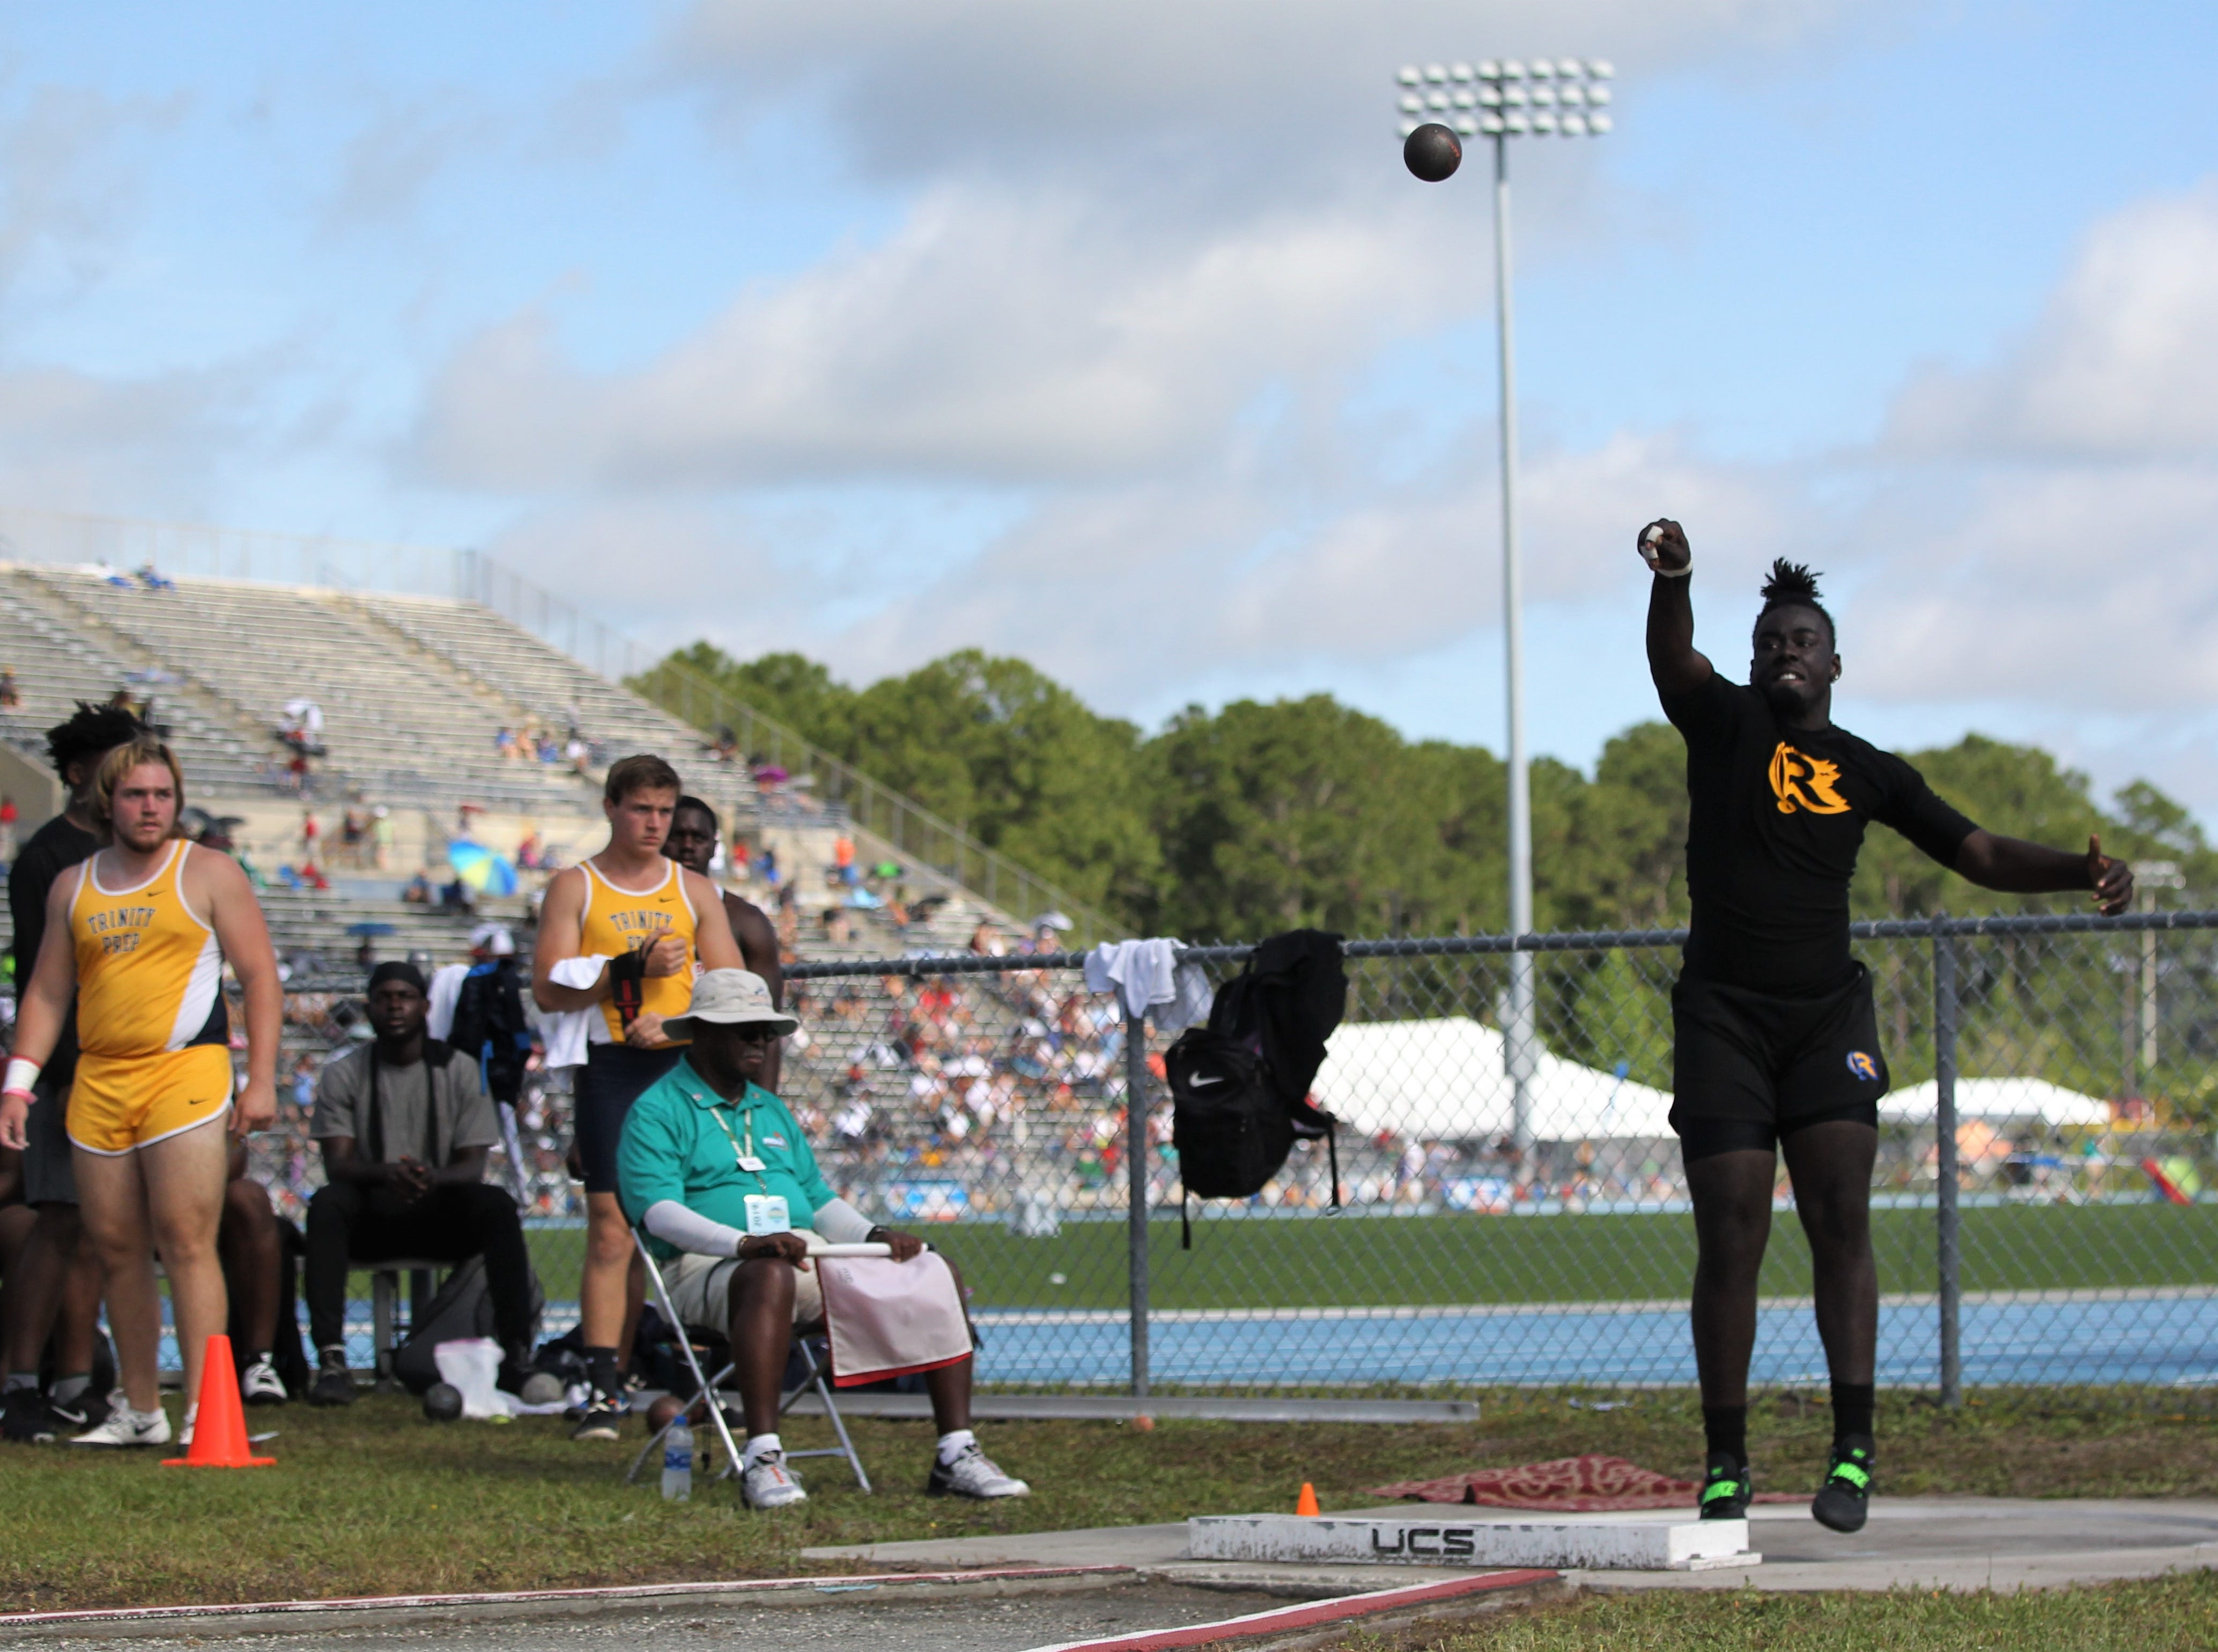 Rickards senior Ke'Shaun Mitchell throws shot put during the FHSAA Track and Field State Championships at UNF's Hodges Stadium in Jacksonville on May 4, 2019.